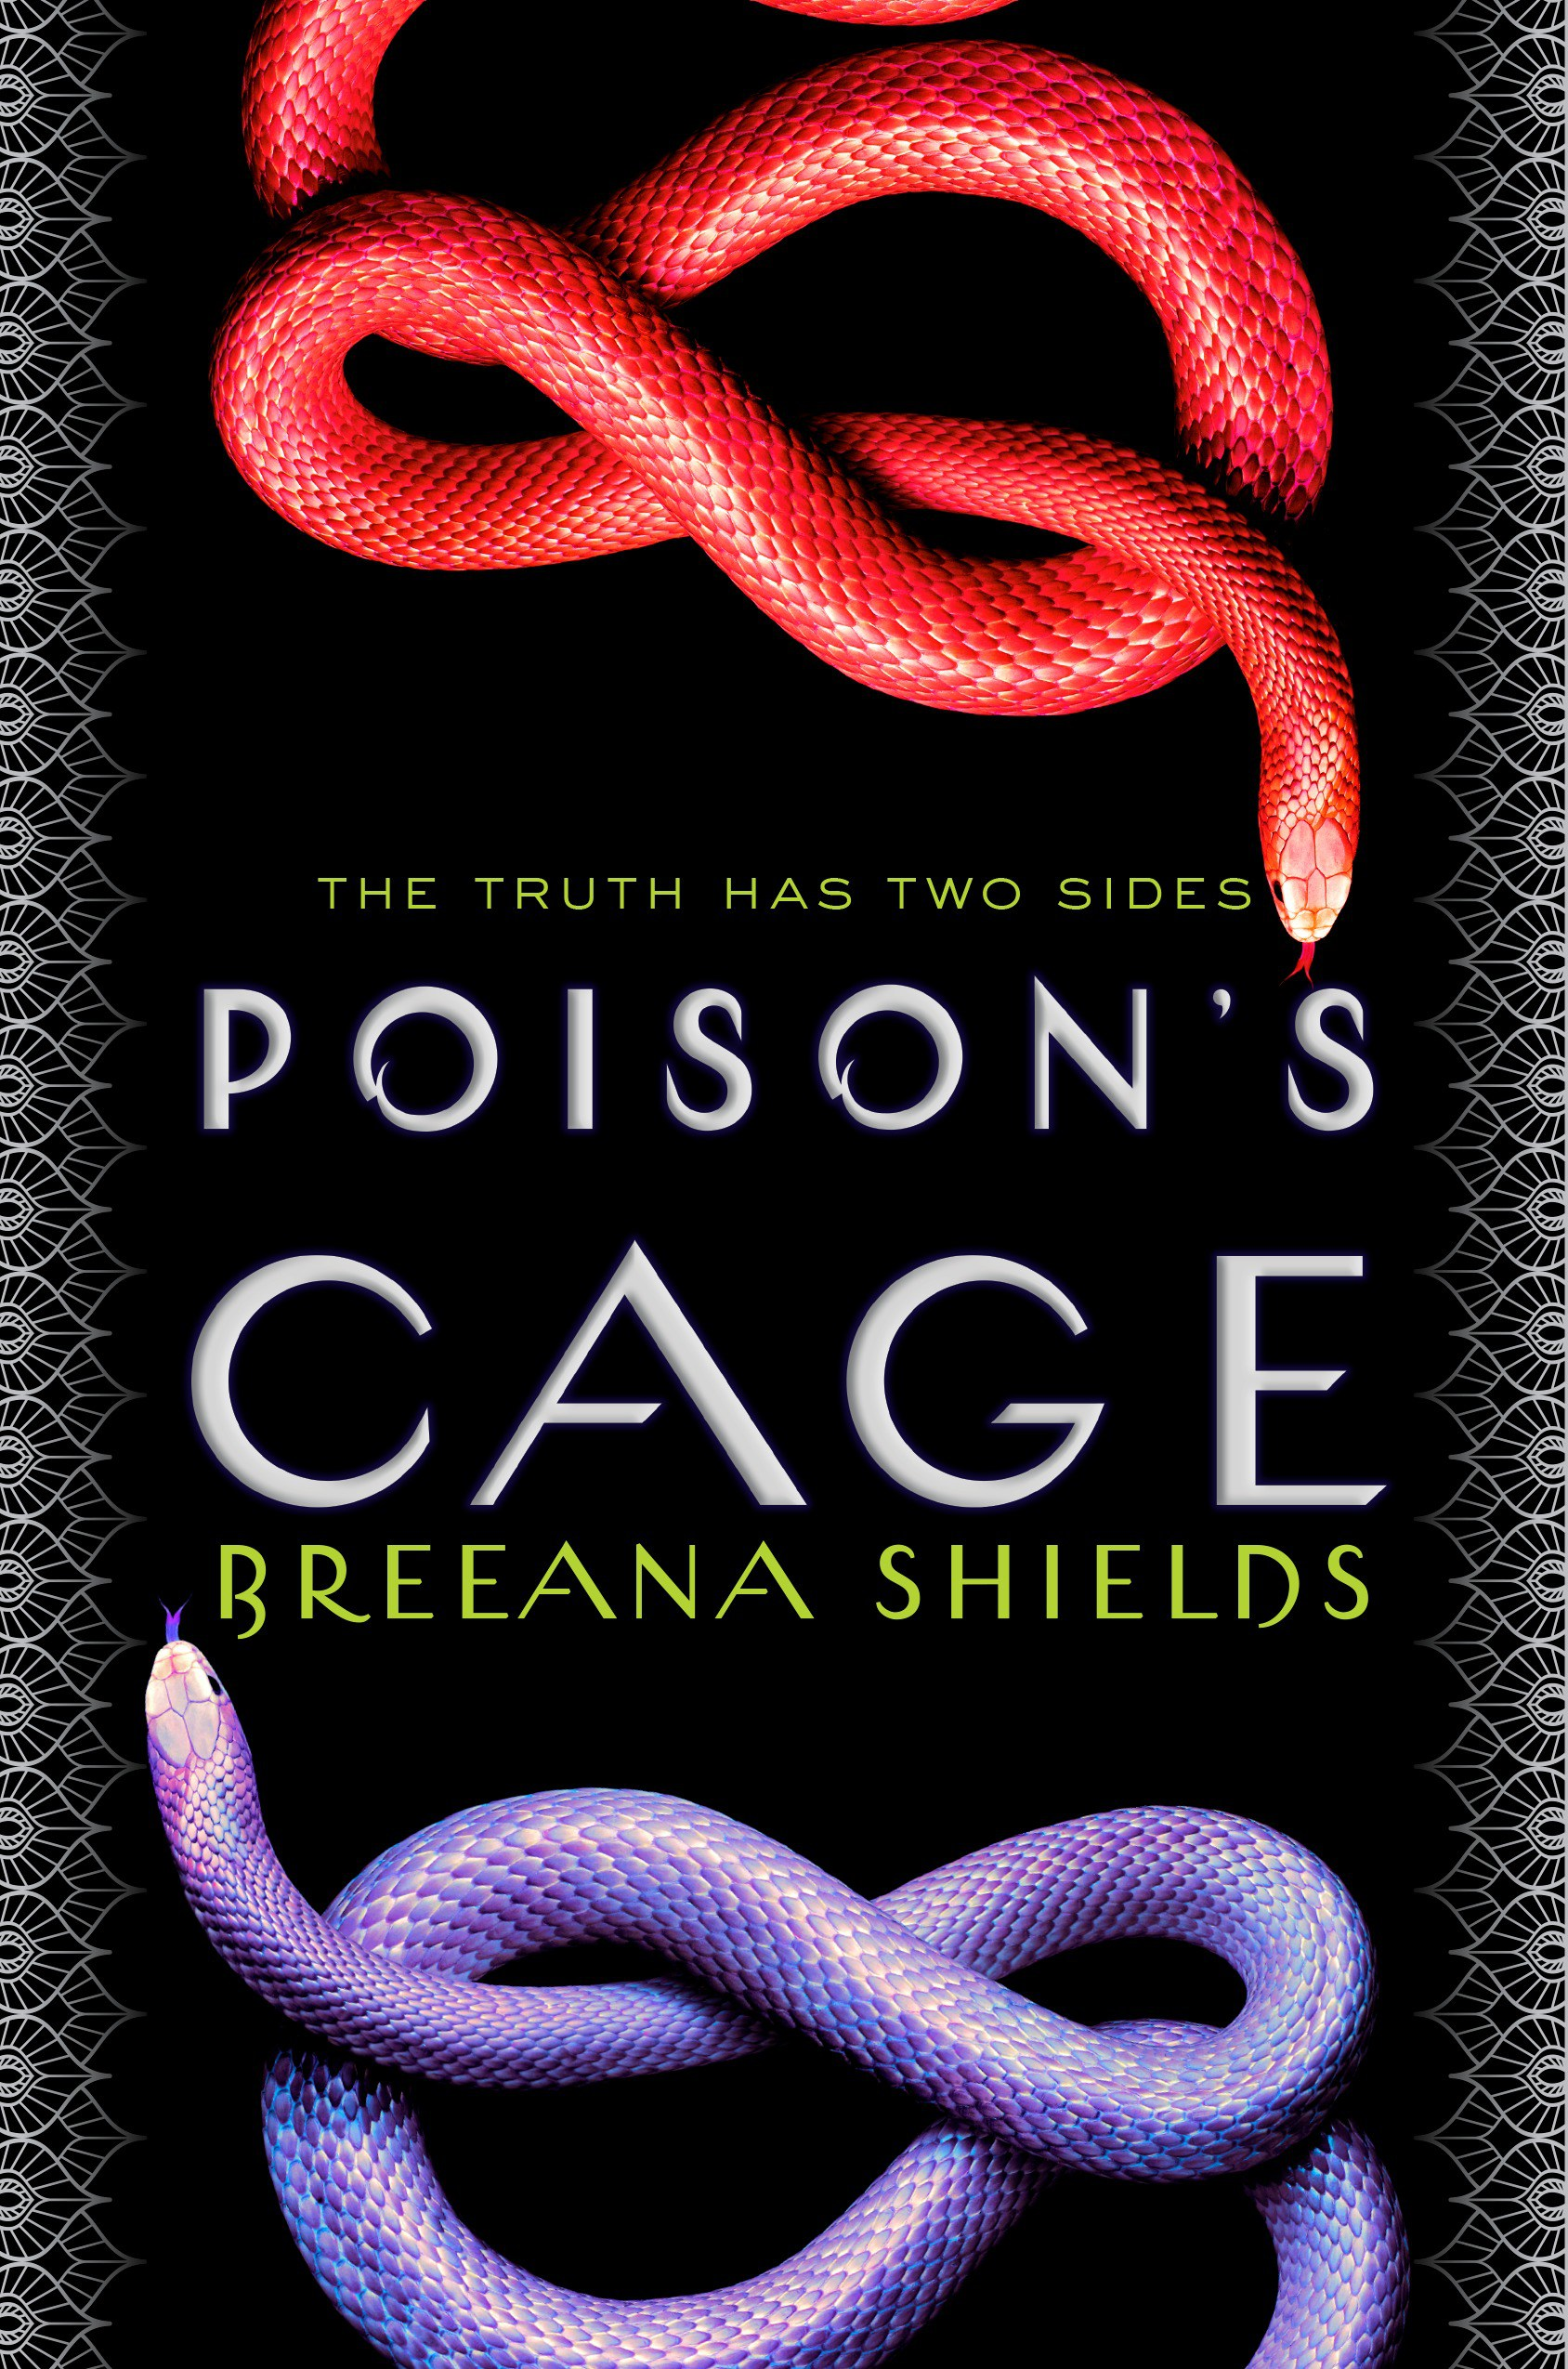 Poison's Cage by Breeana Shields